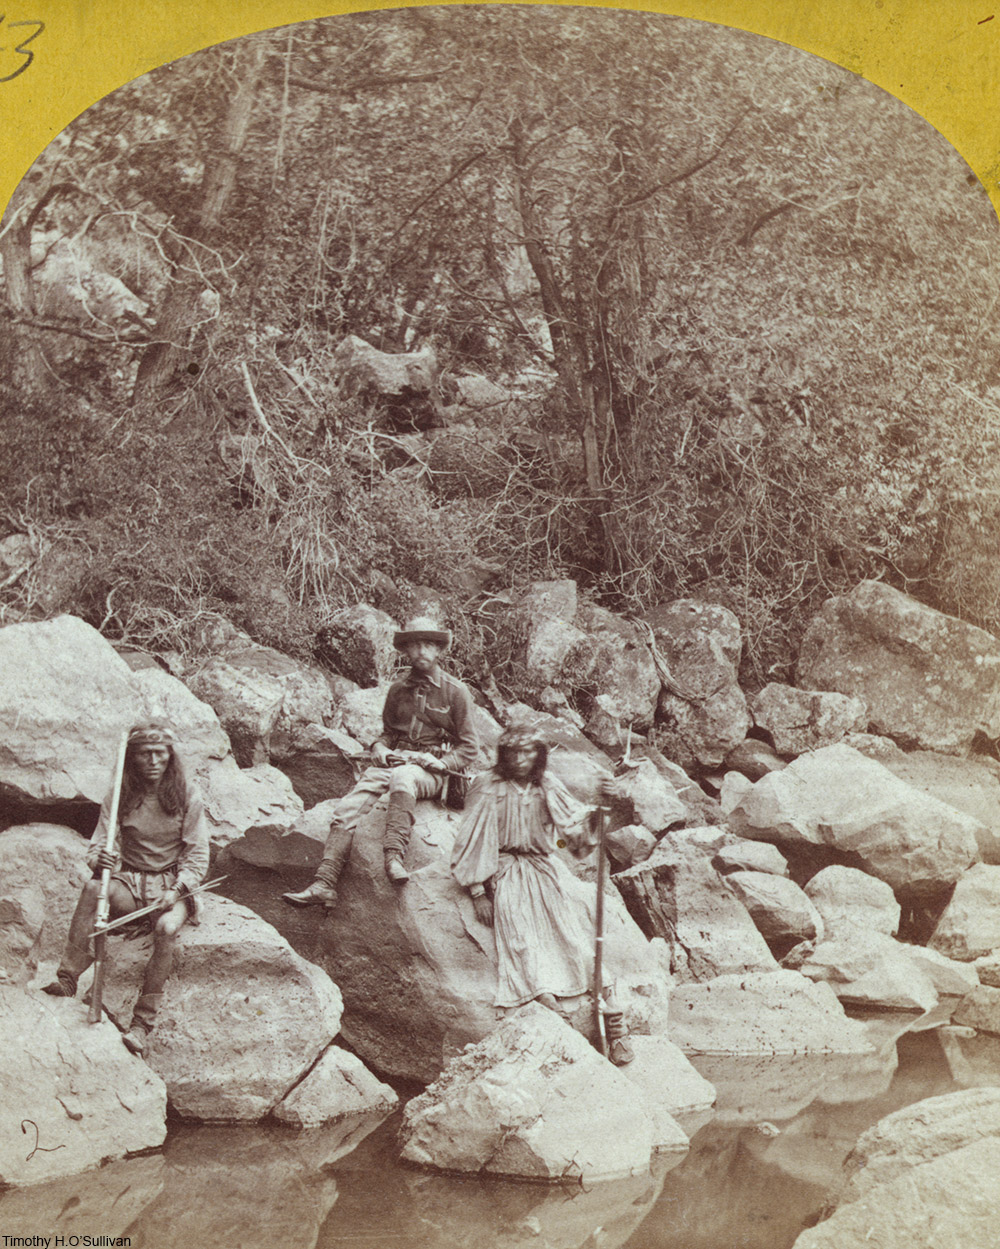 Apache scouts in New Mexico, 1873